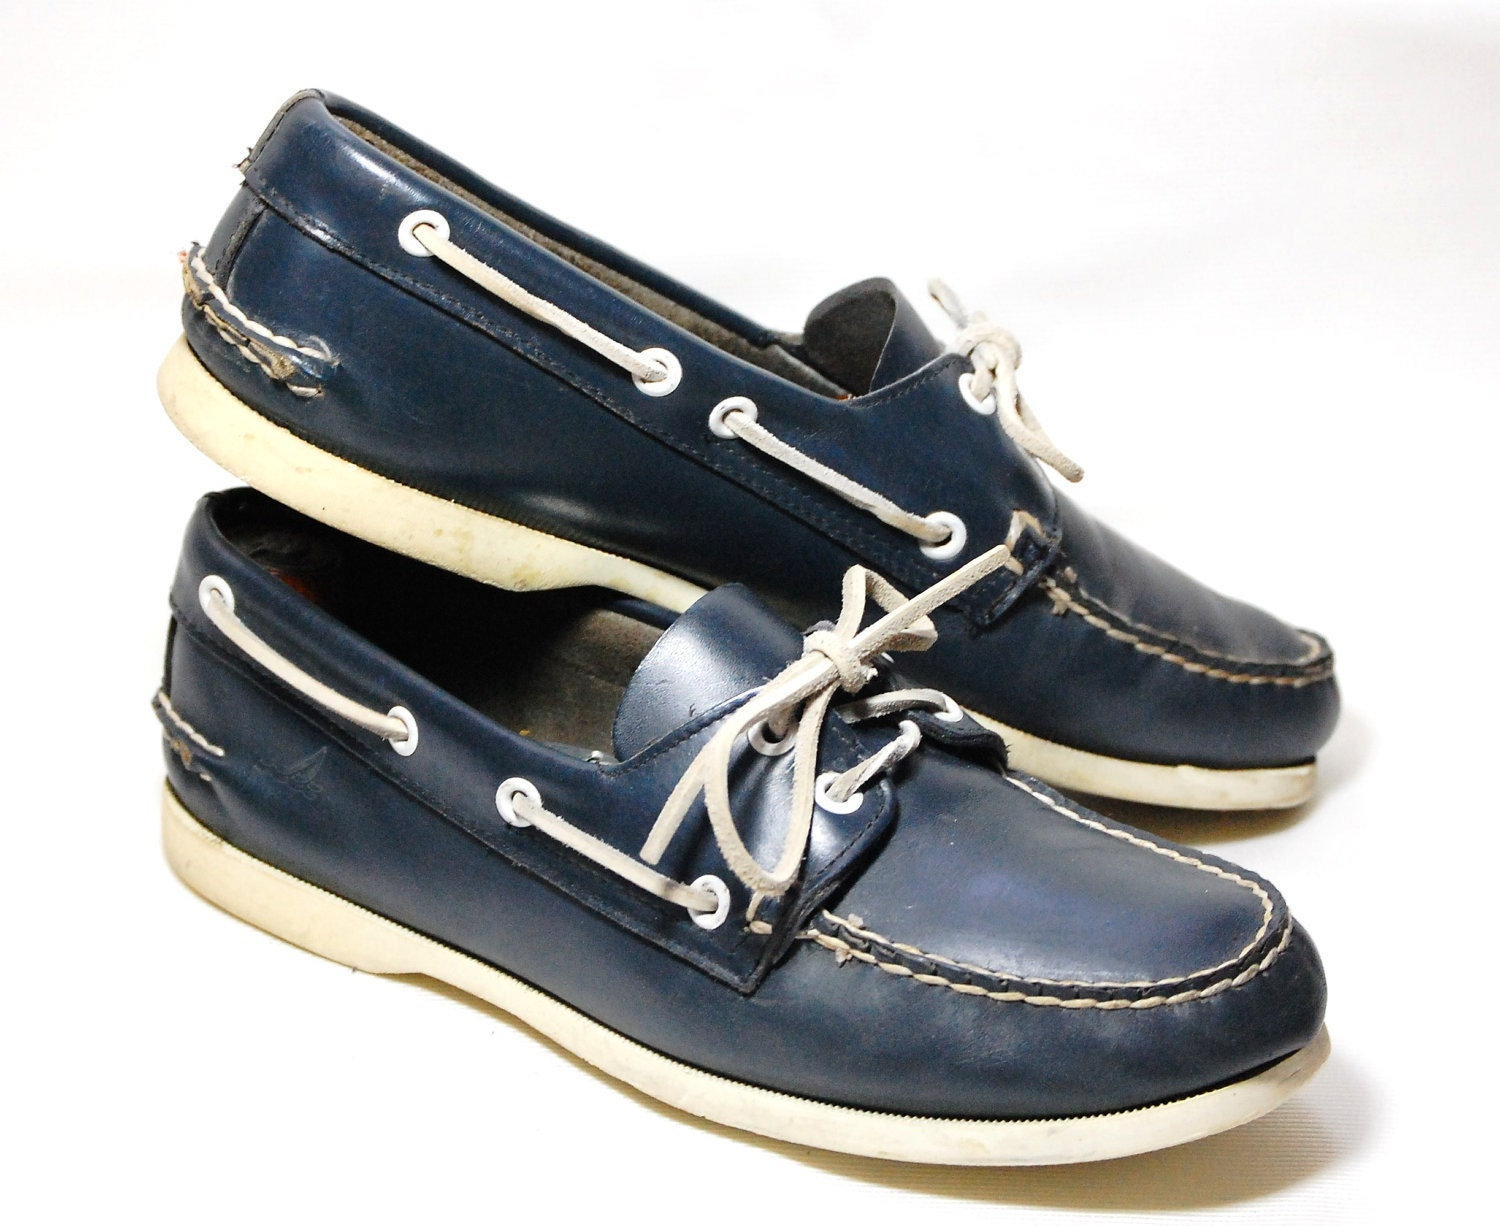 Navy Blue Sperry Topsiders Deck/Boat Shoes Mens 7 1/2 Womens 9